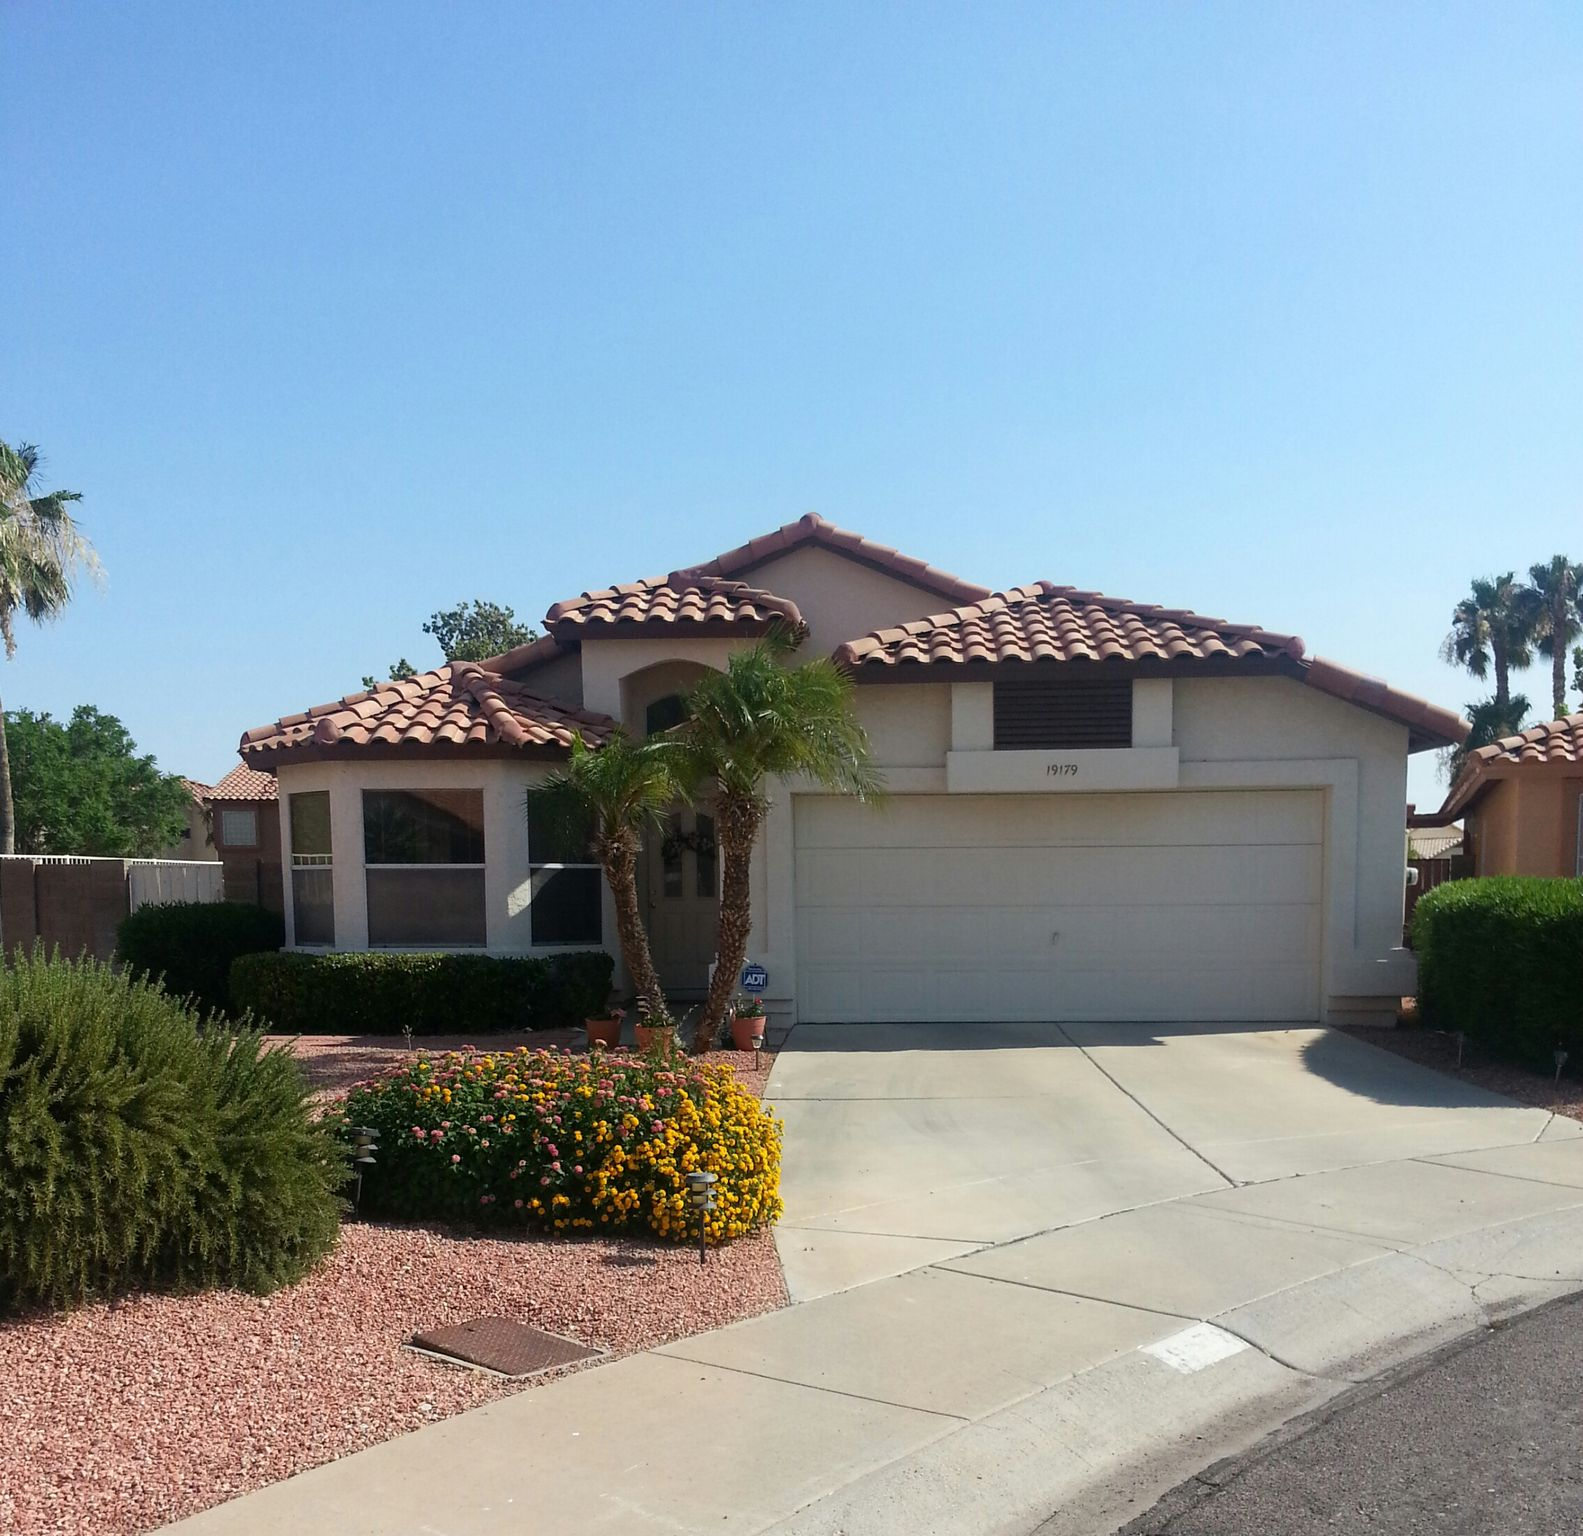 19179 n 78th ave, glendale, az 85308 - estimate and home details